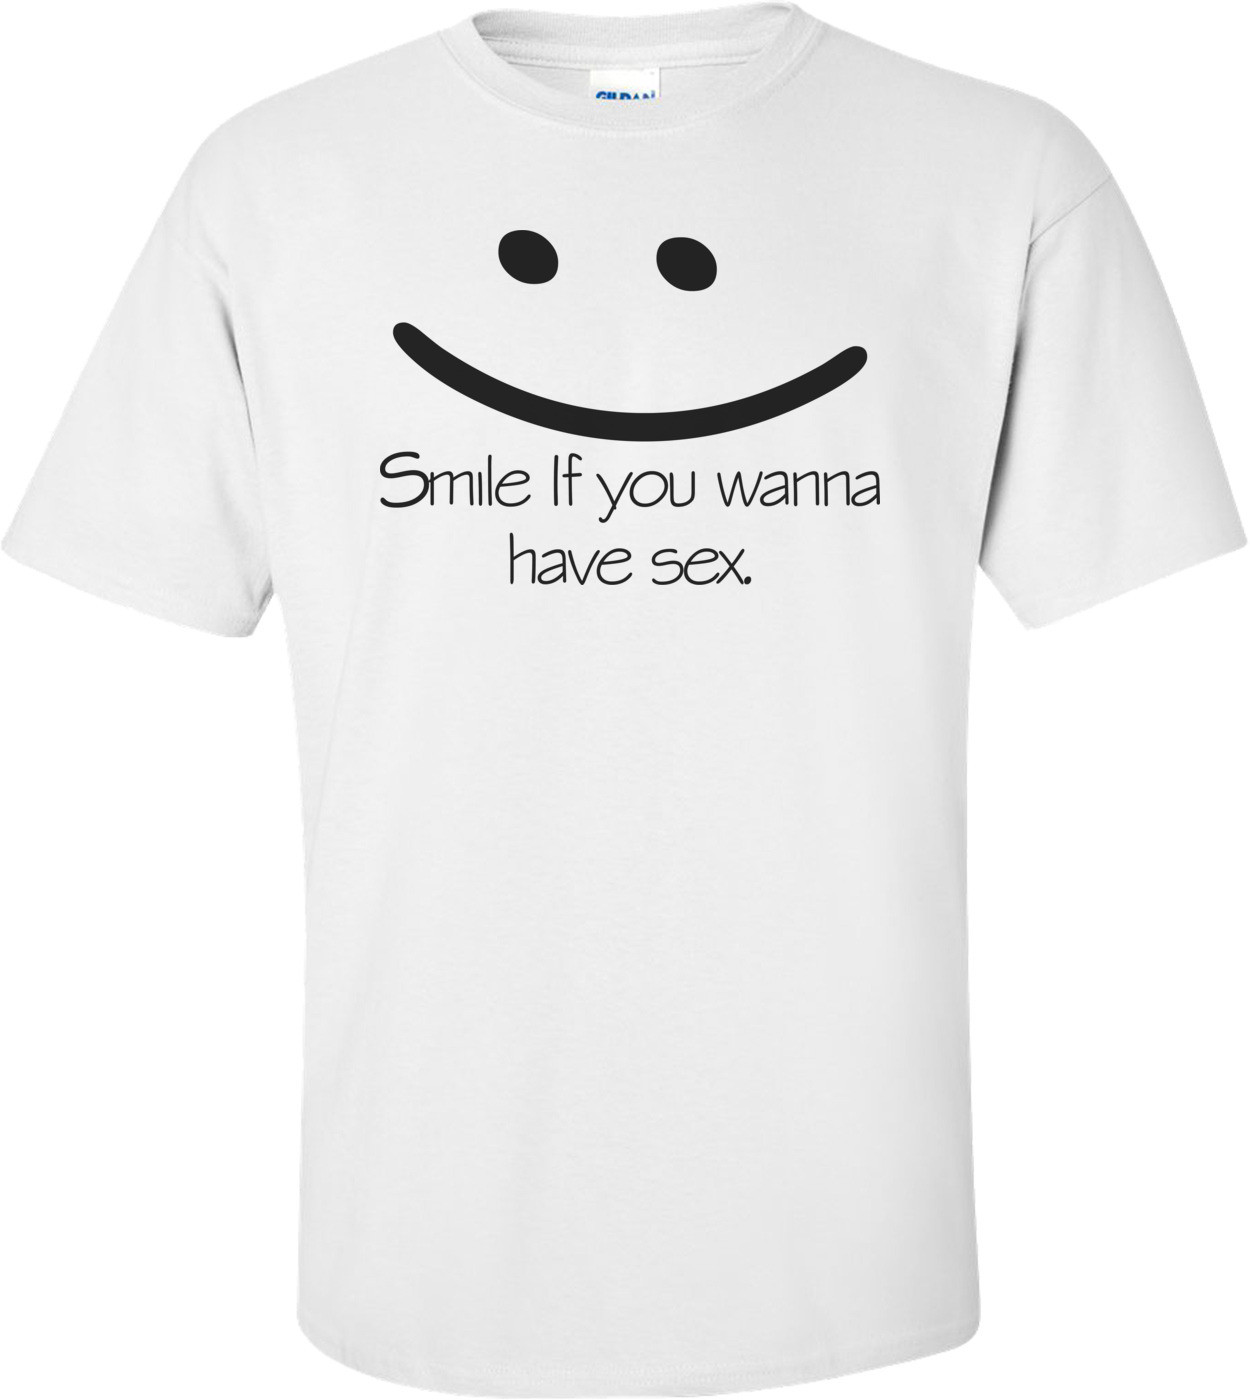 Smile If You Wanna Have Sex Shirt